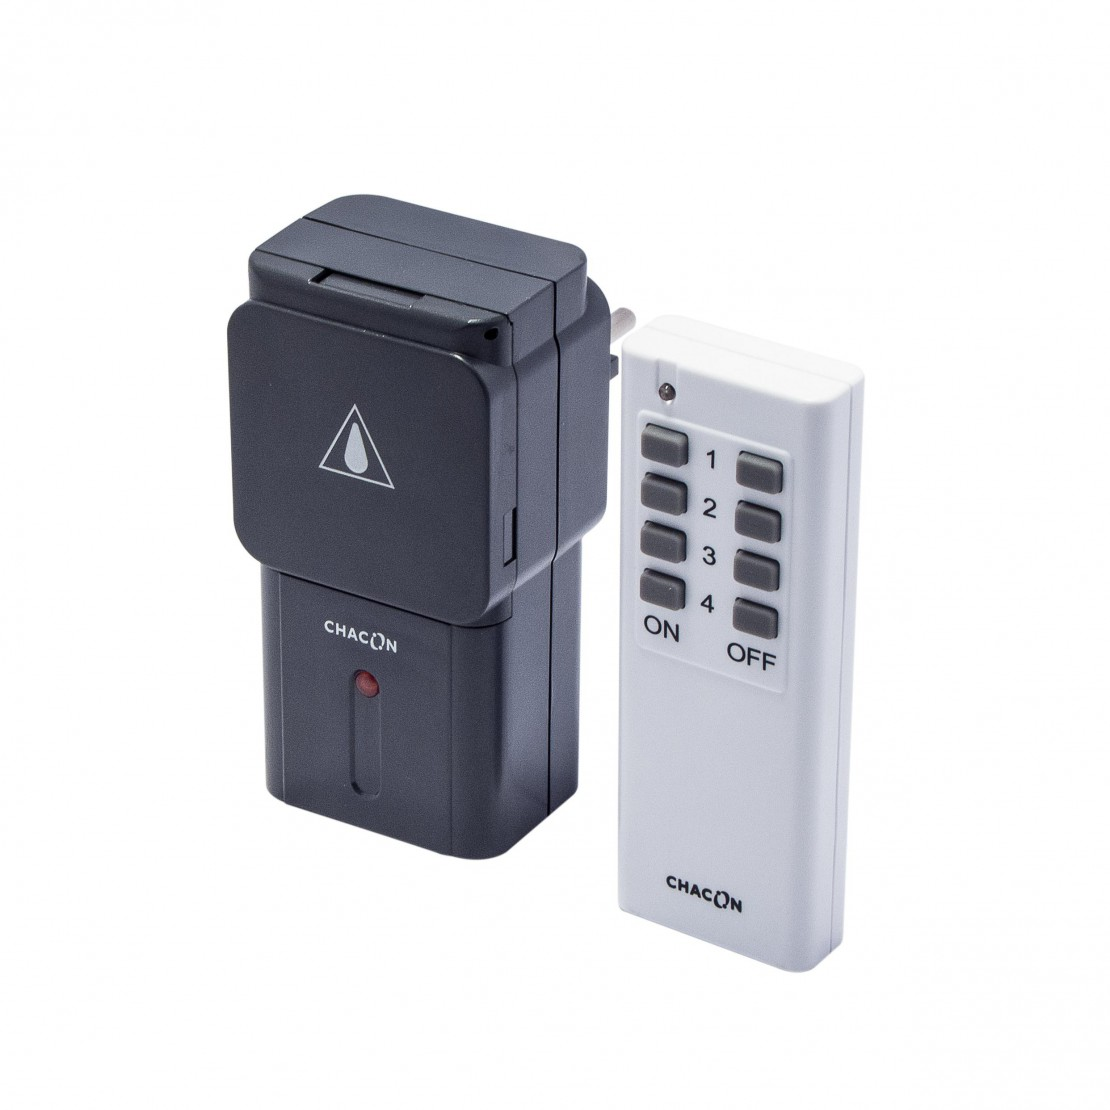 Set of 1 remote-controlled outdoor socket + remote control